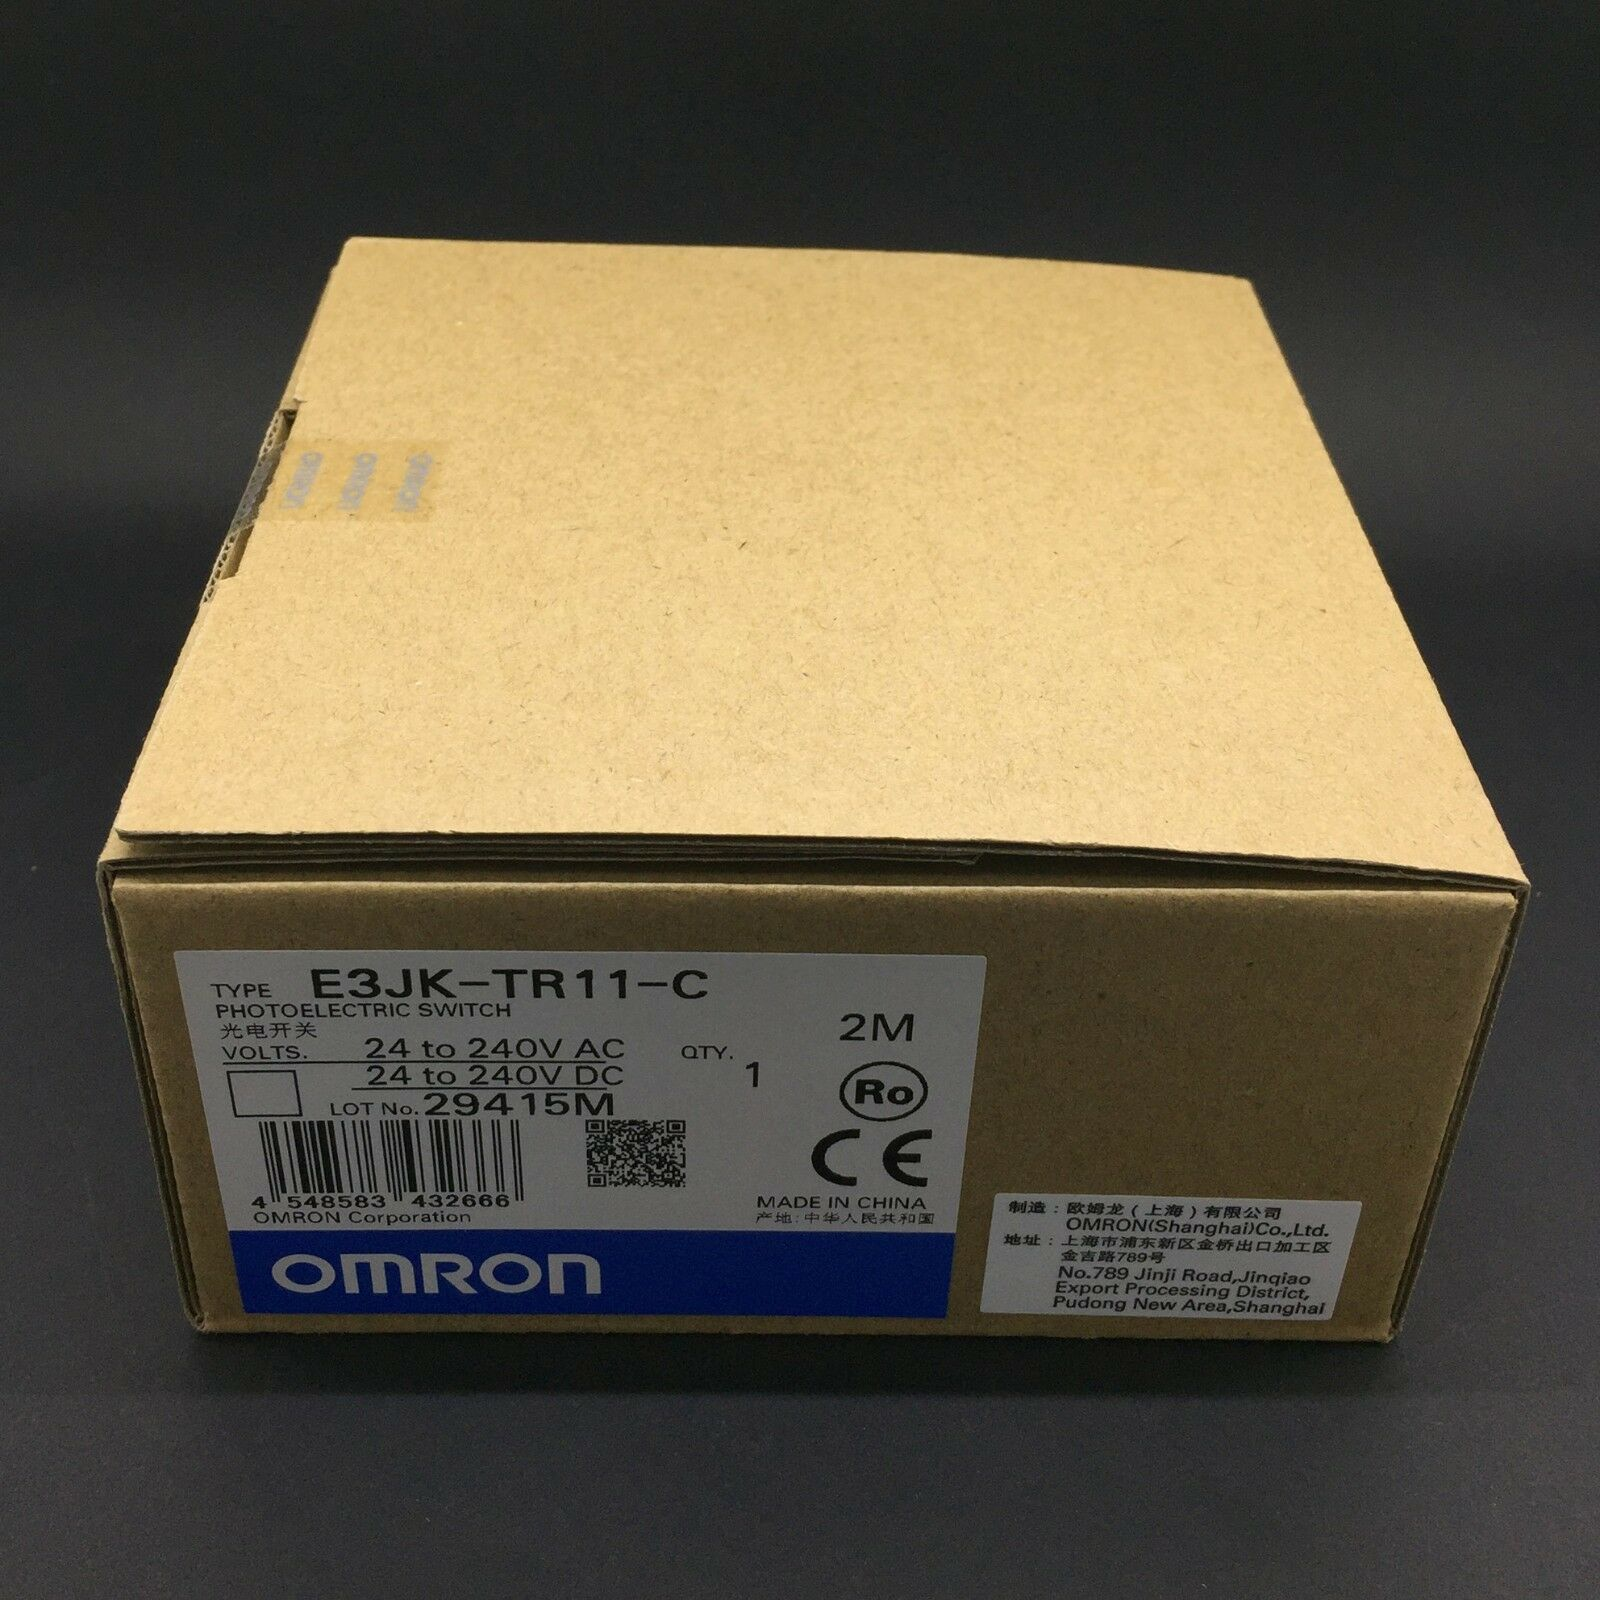 1pcs New Omron Brand New E3JK-R2M1 24-240VAC Photoelectric Switch In Box